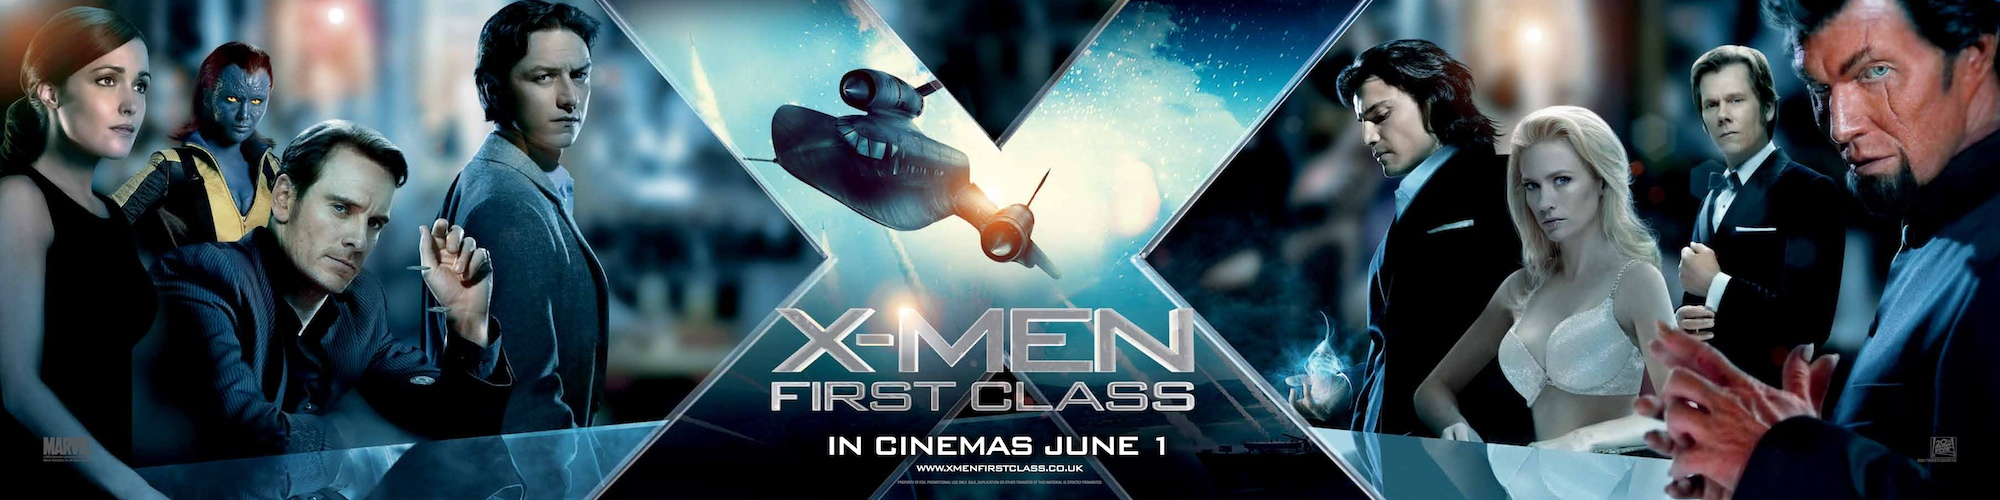 X-Men - First Class Banner